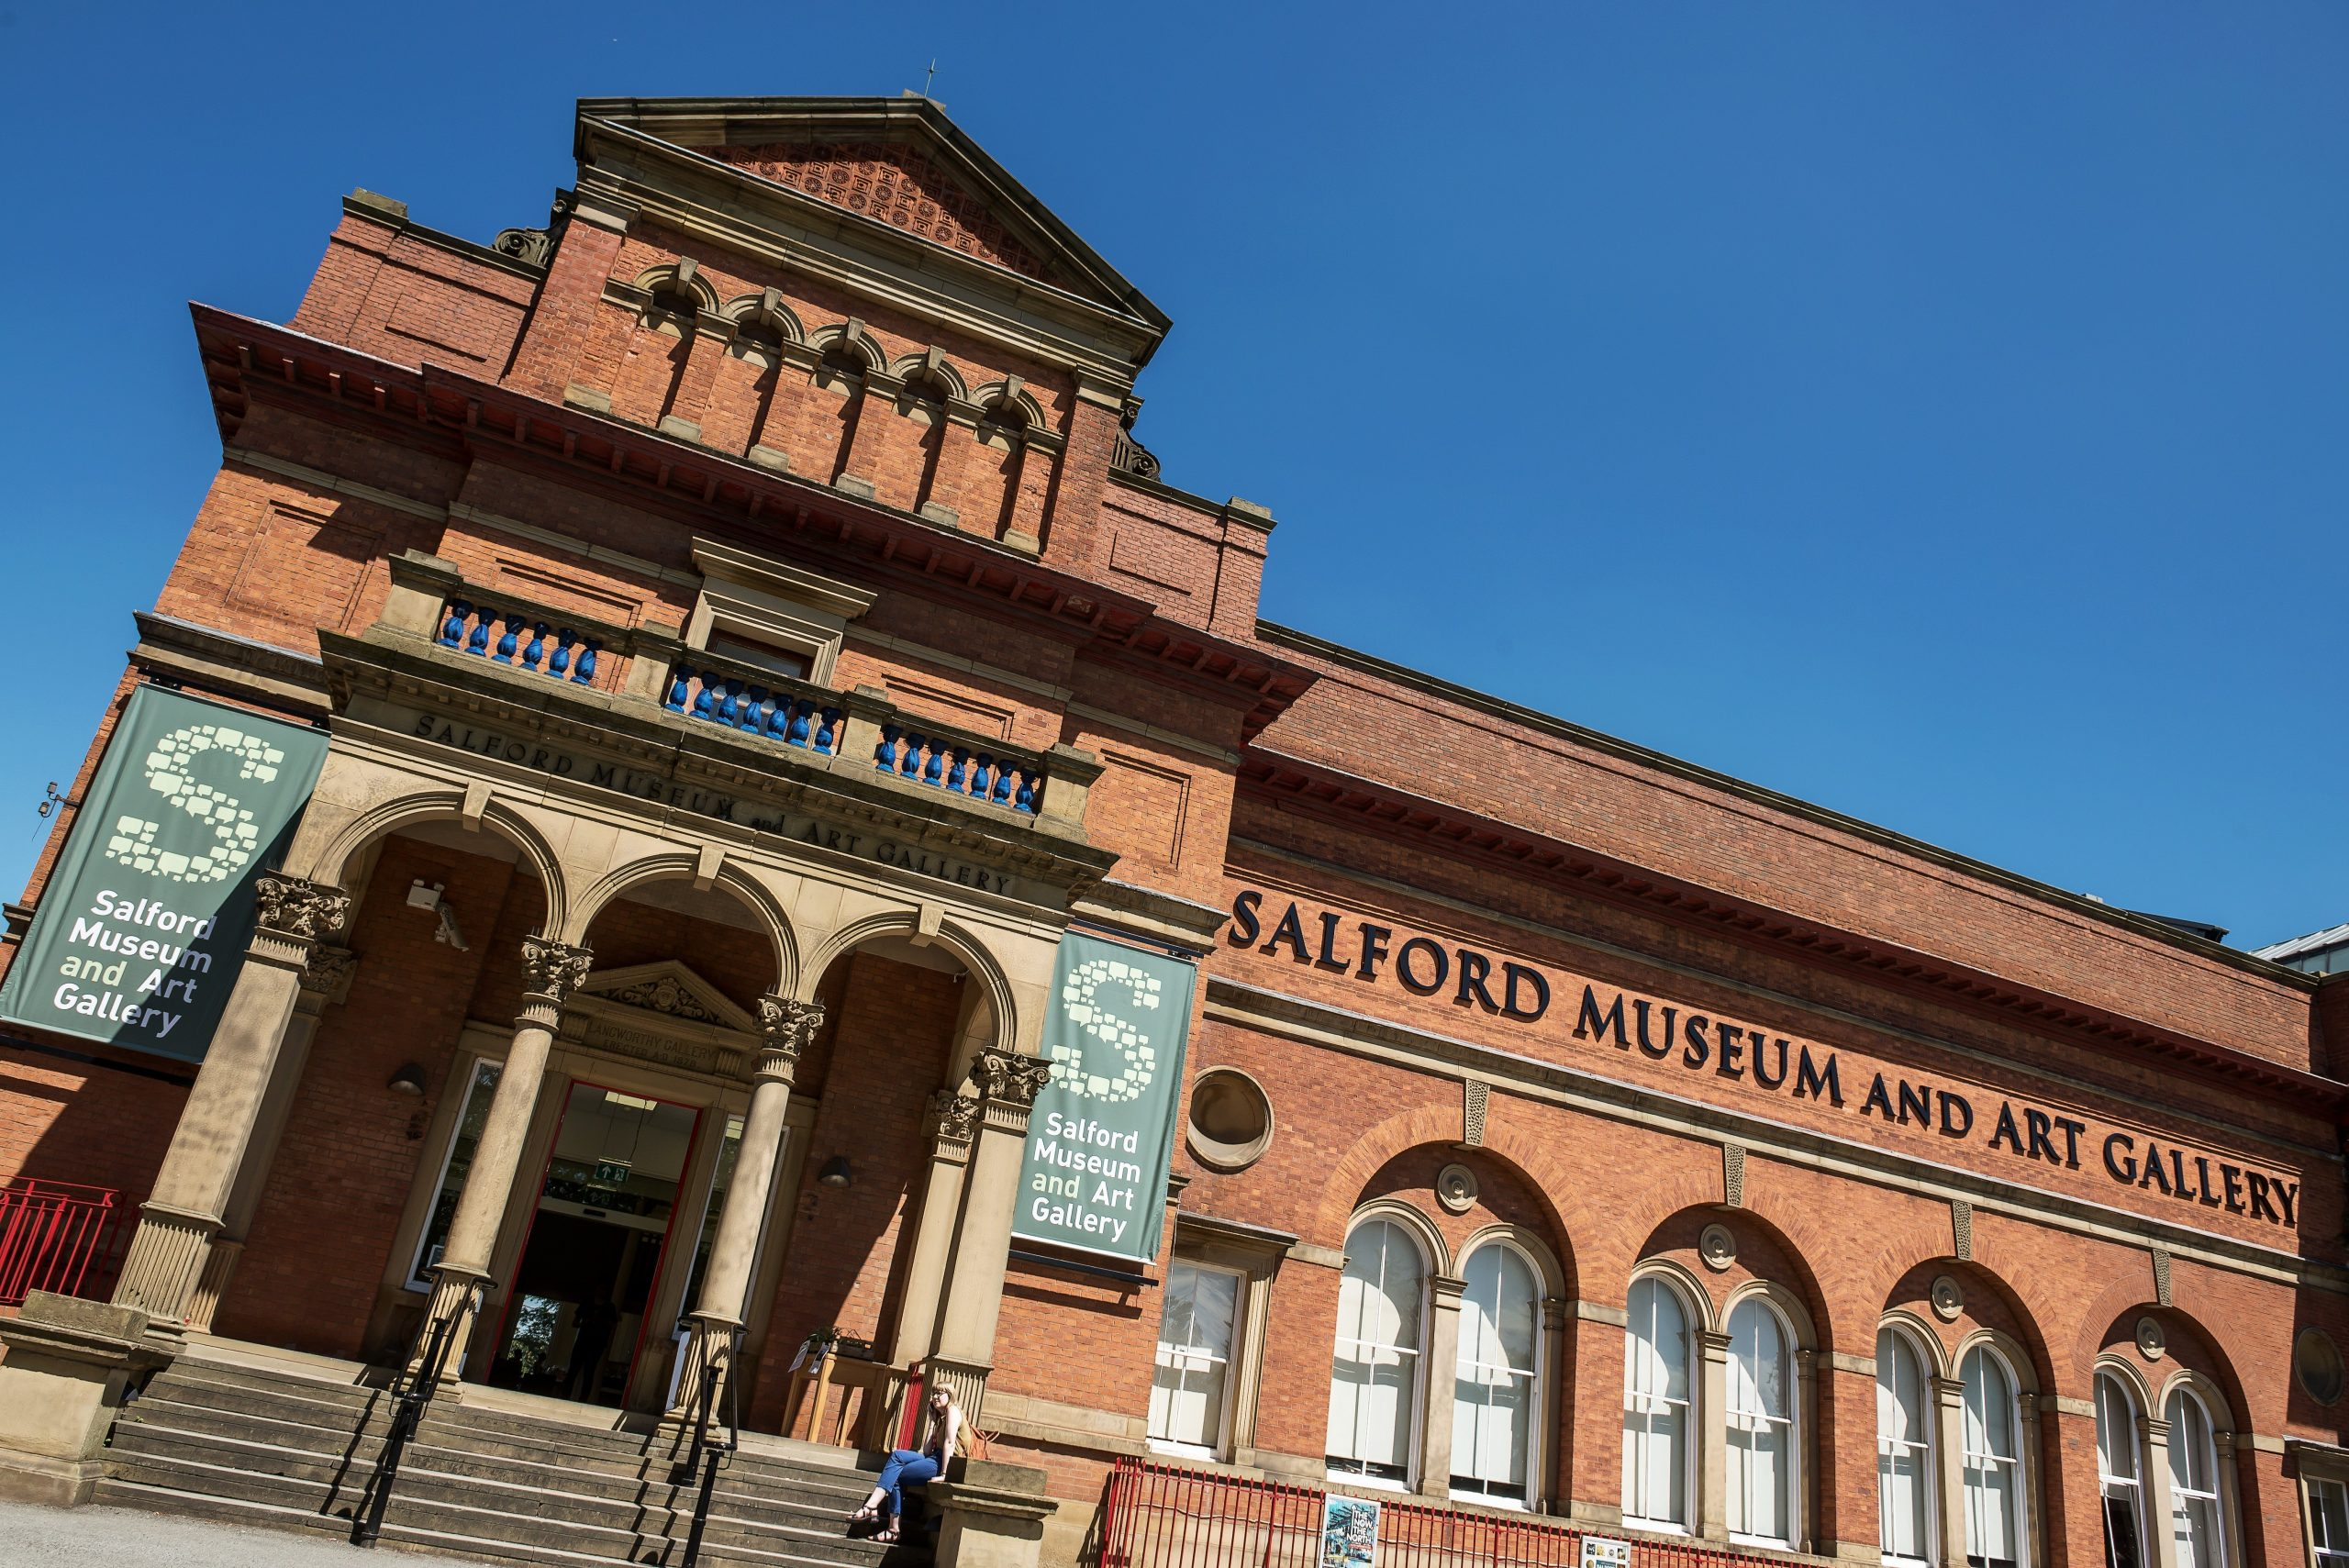 Salford Museum and Art Gallery feature in painters TUBES magazine